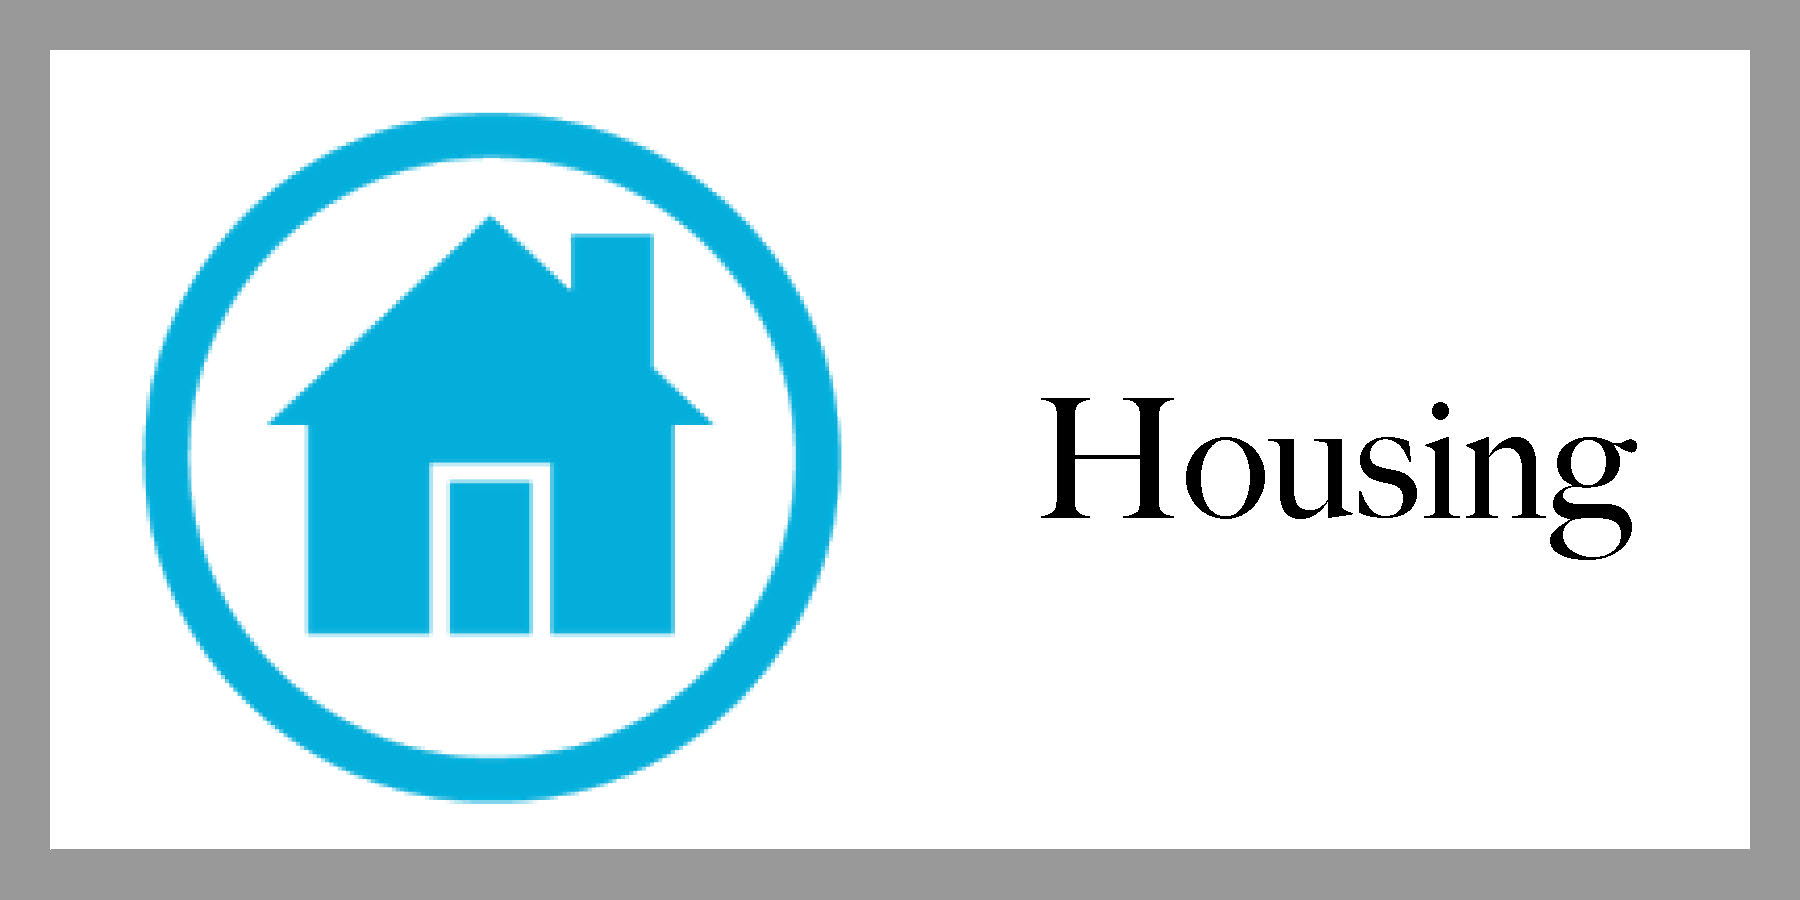 Clickable housing emblem